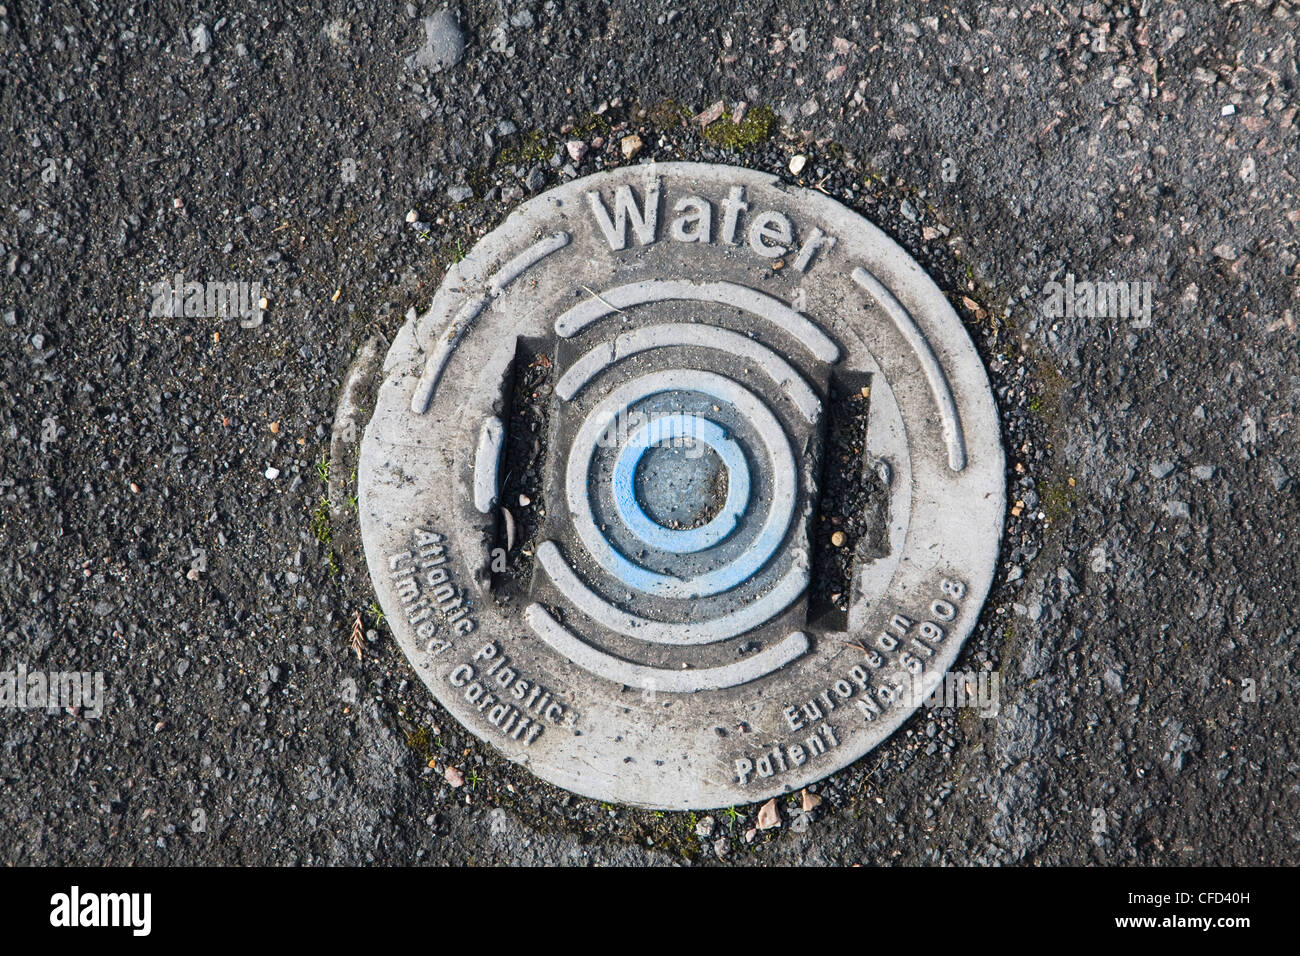 Water supply for household cover set in tarmac - Stock Image